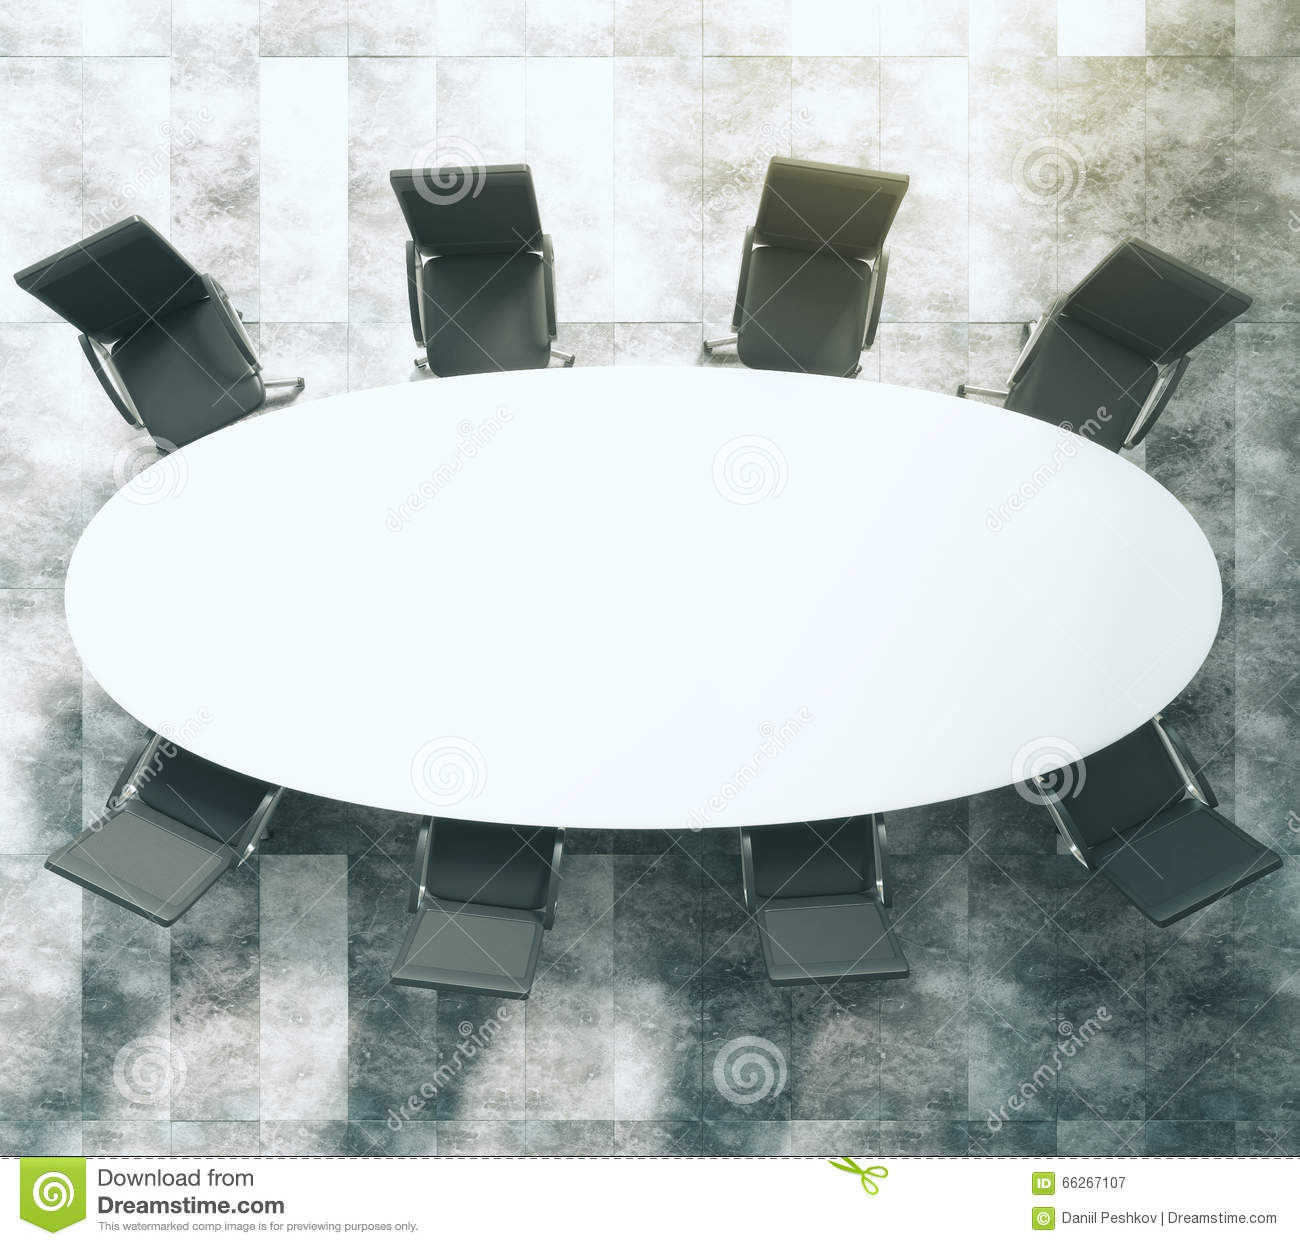 Superieur Download White Oval Conference Table With Black Leather Chairs On Concret  Stock Illustration   Illustration Of